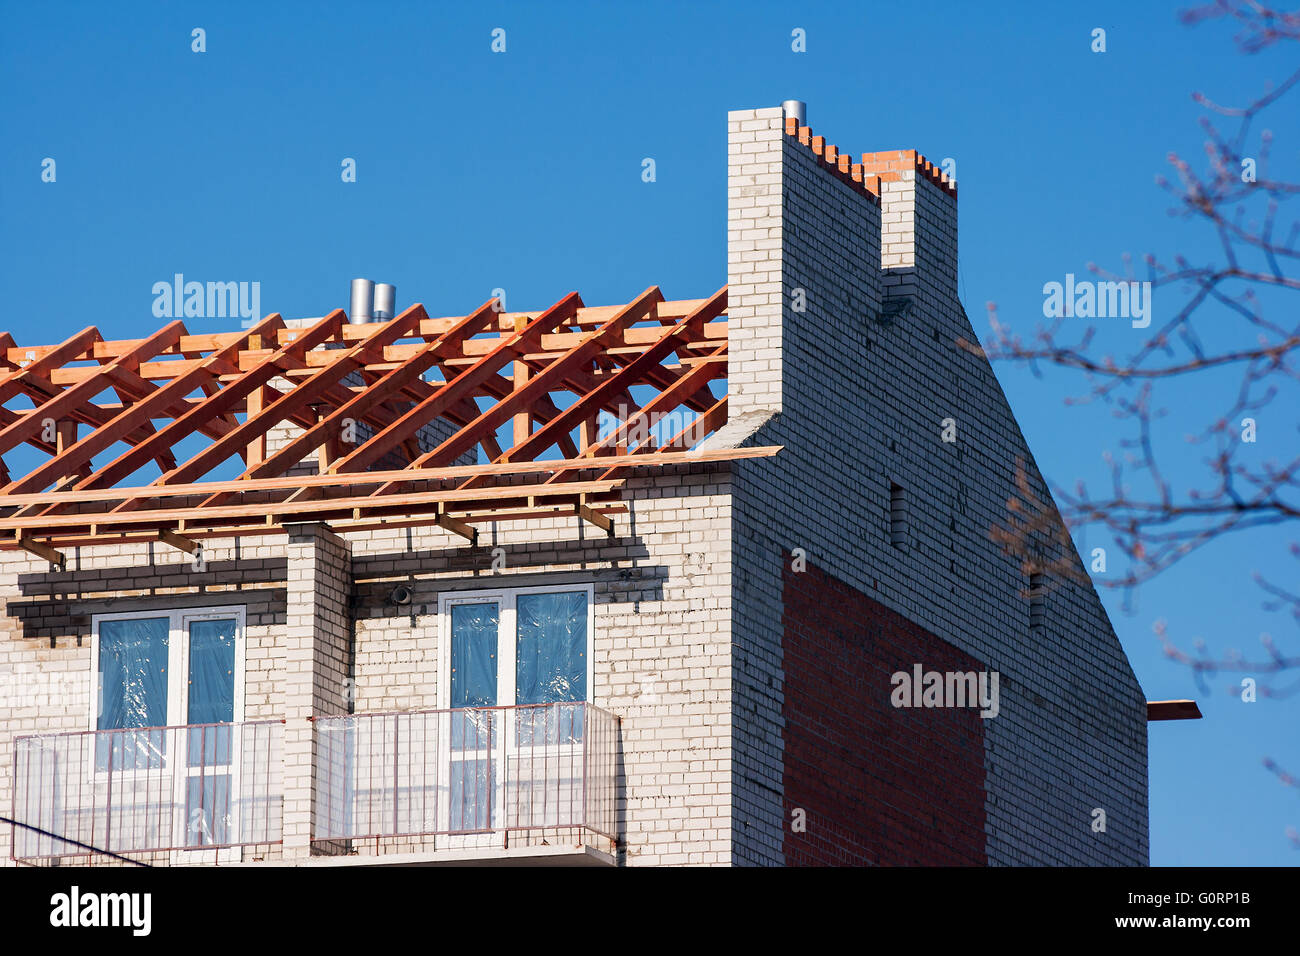 construction of a new modern multistory building - Stock Image